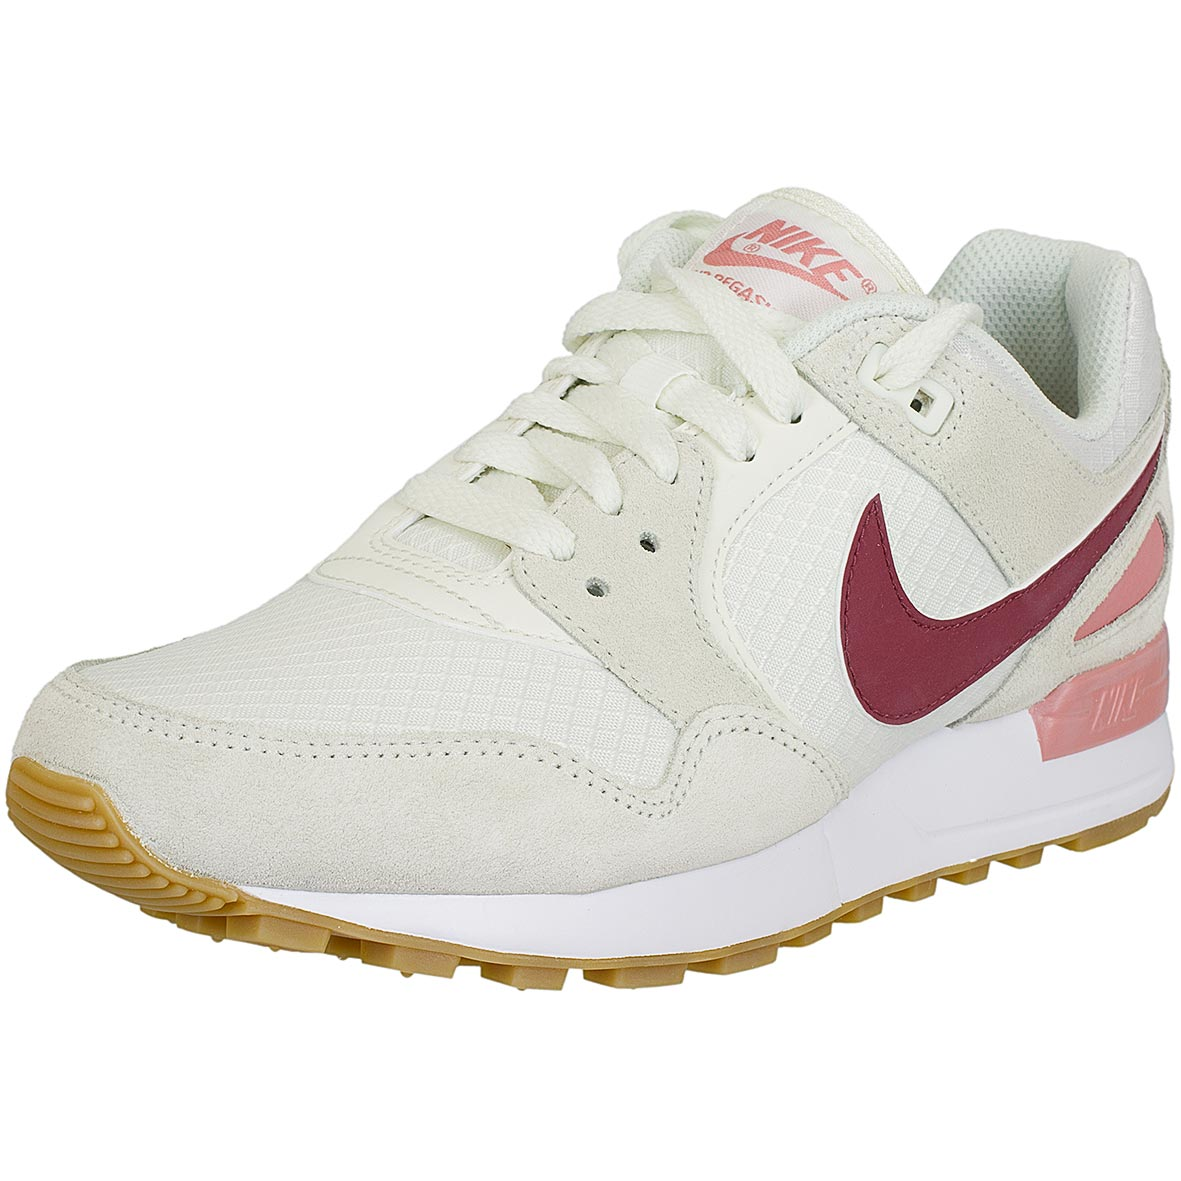 nike damen sneaker air pegasus 89 beige rot hier bestellen. Black Bedroom Furniture Sets. Home Design Ideas